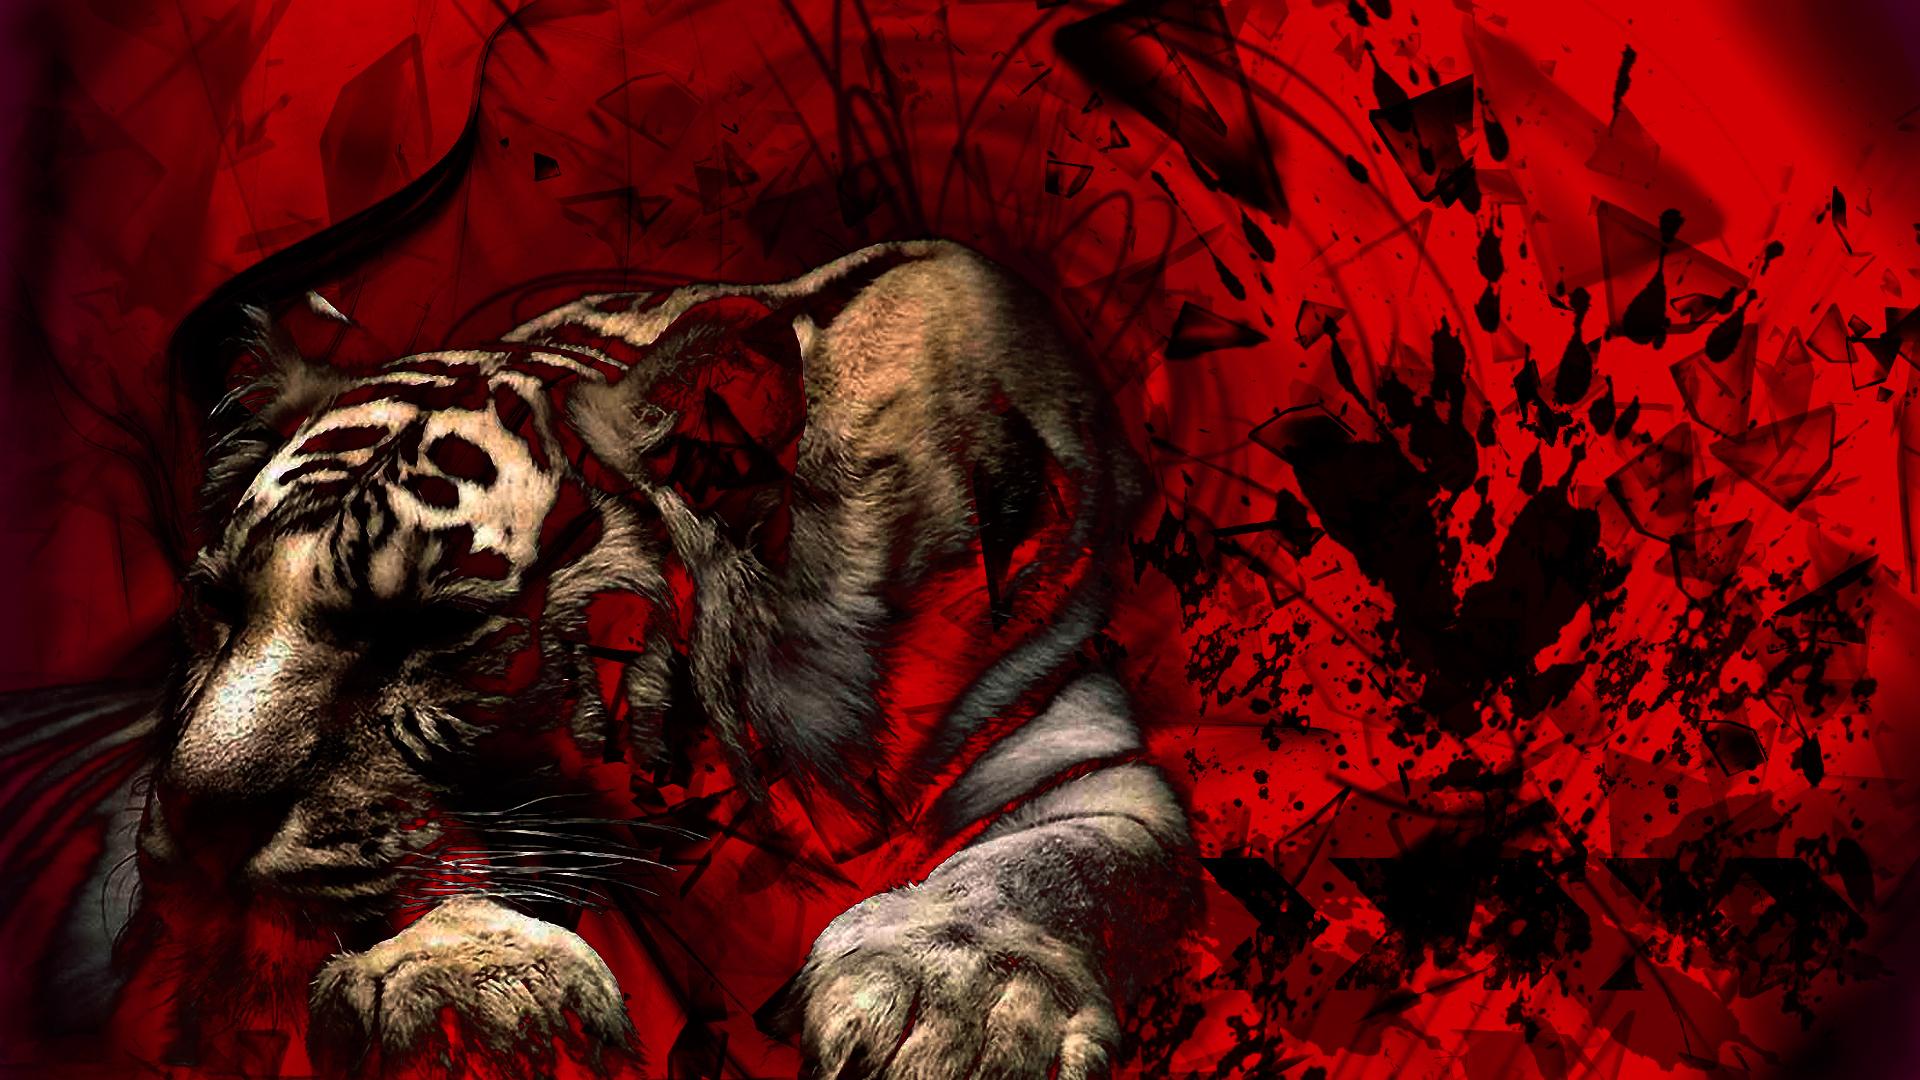 Epic tiger wallpaper by brygman on deviantart epic tiger wallpaper by brygman altavistaventures